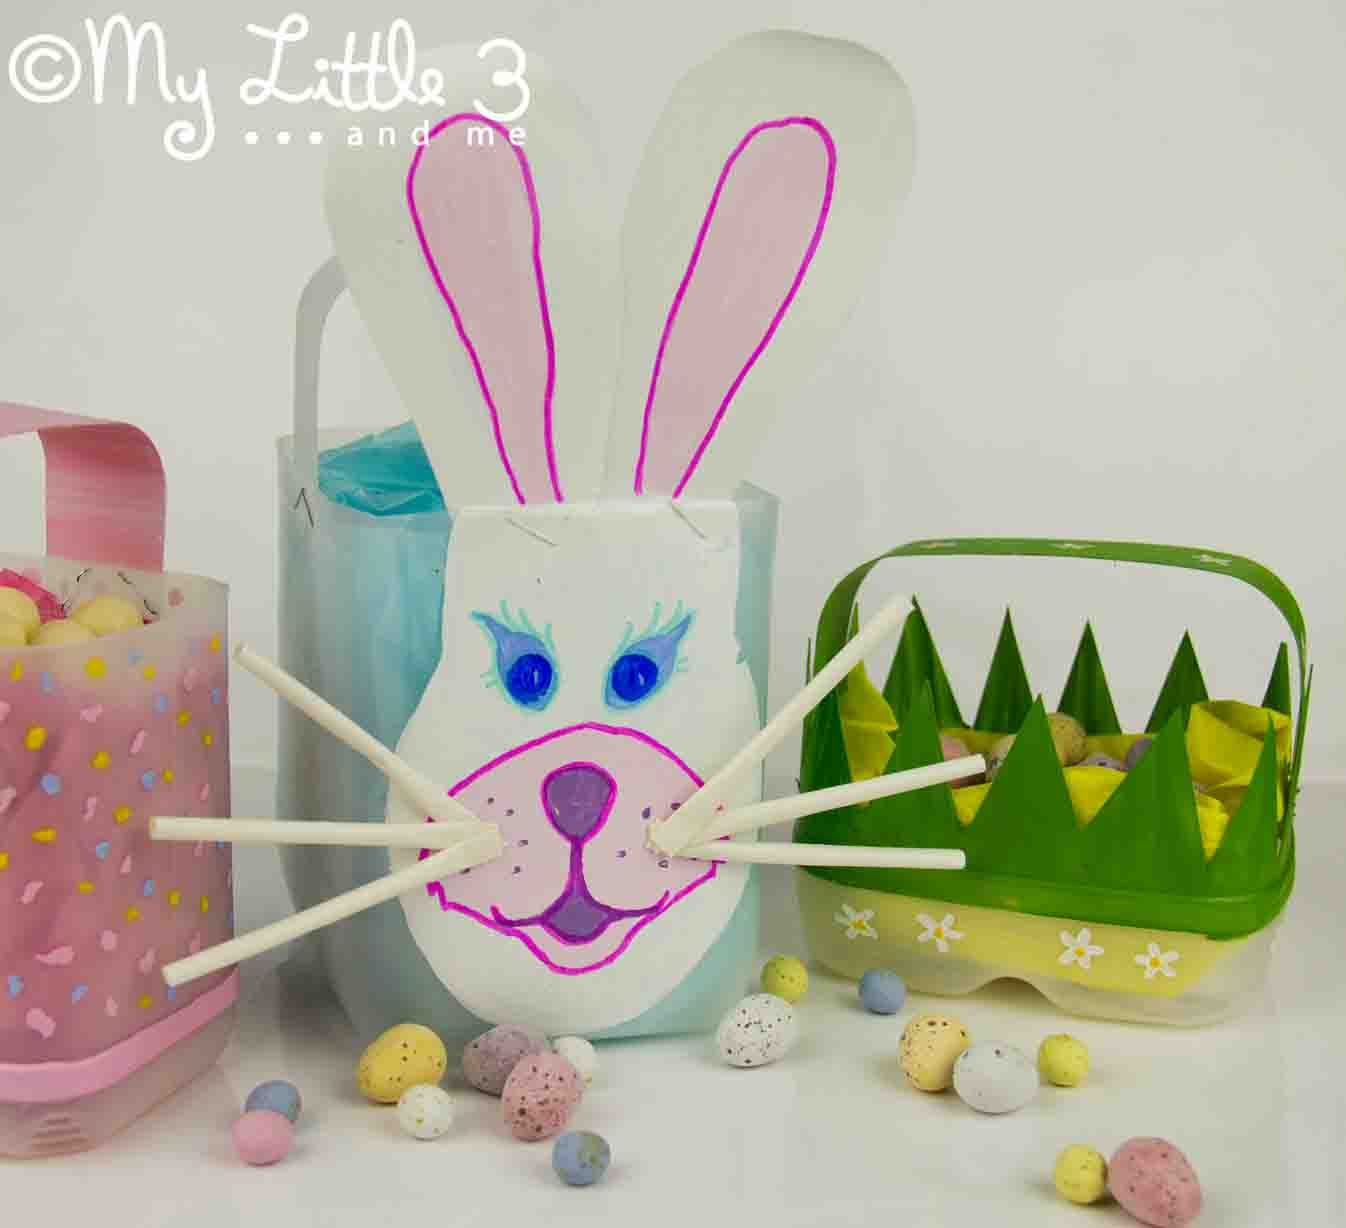 Homemade Easter Baskets - My Little 3 and Me